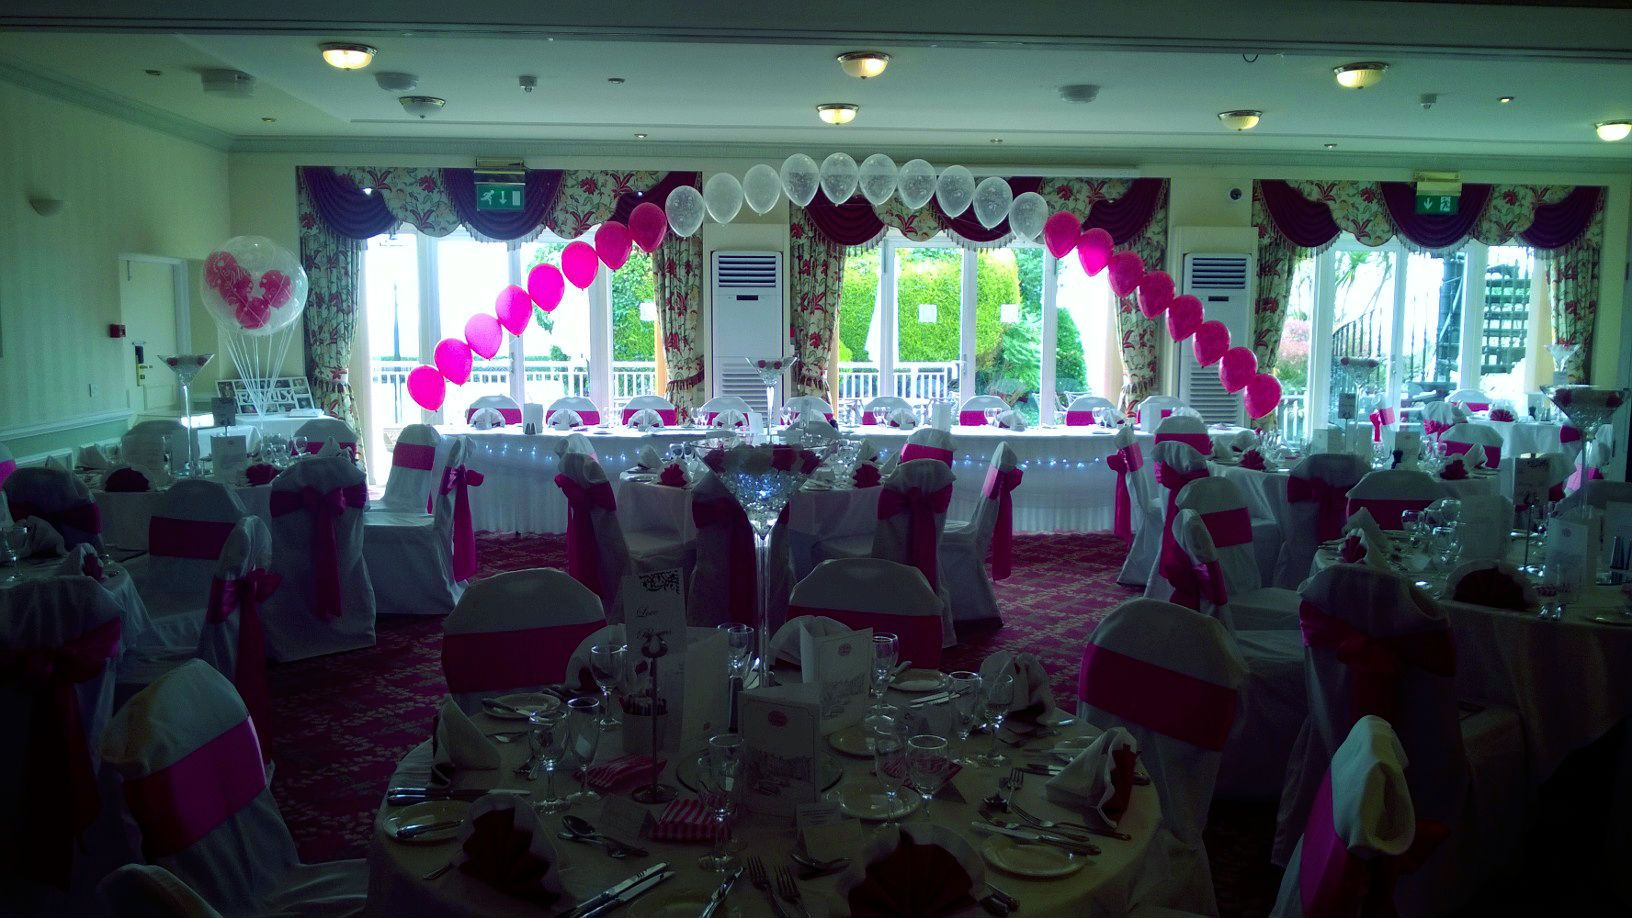 Wedding Chair Covers Eastbourne Wheelchair Dimensions At The Wonderful Hydro Hotel In Balloons And Table Centre Pieces